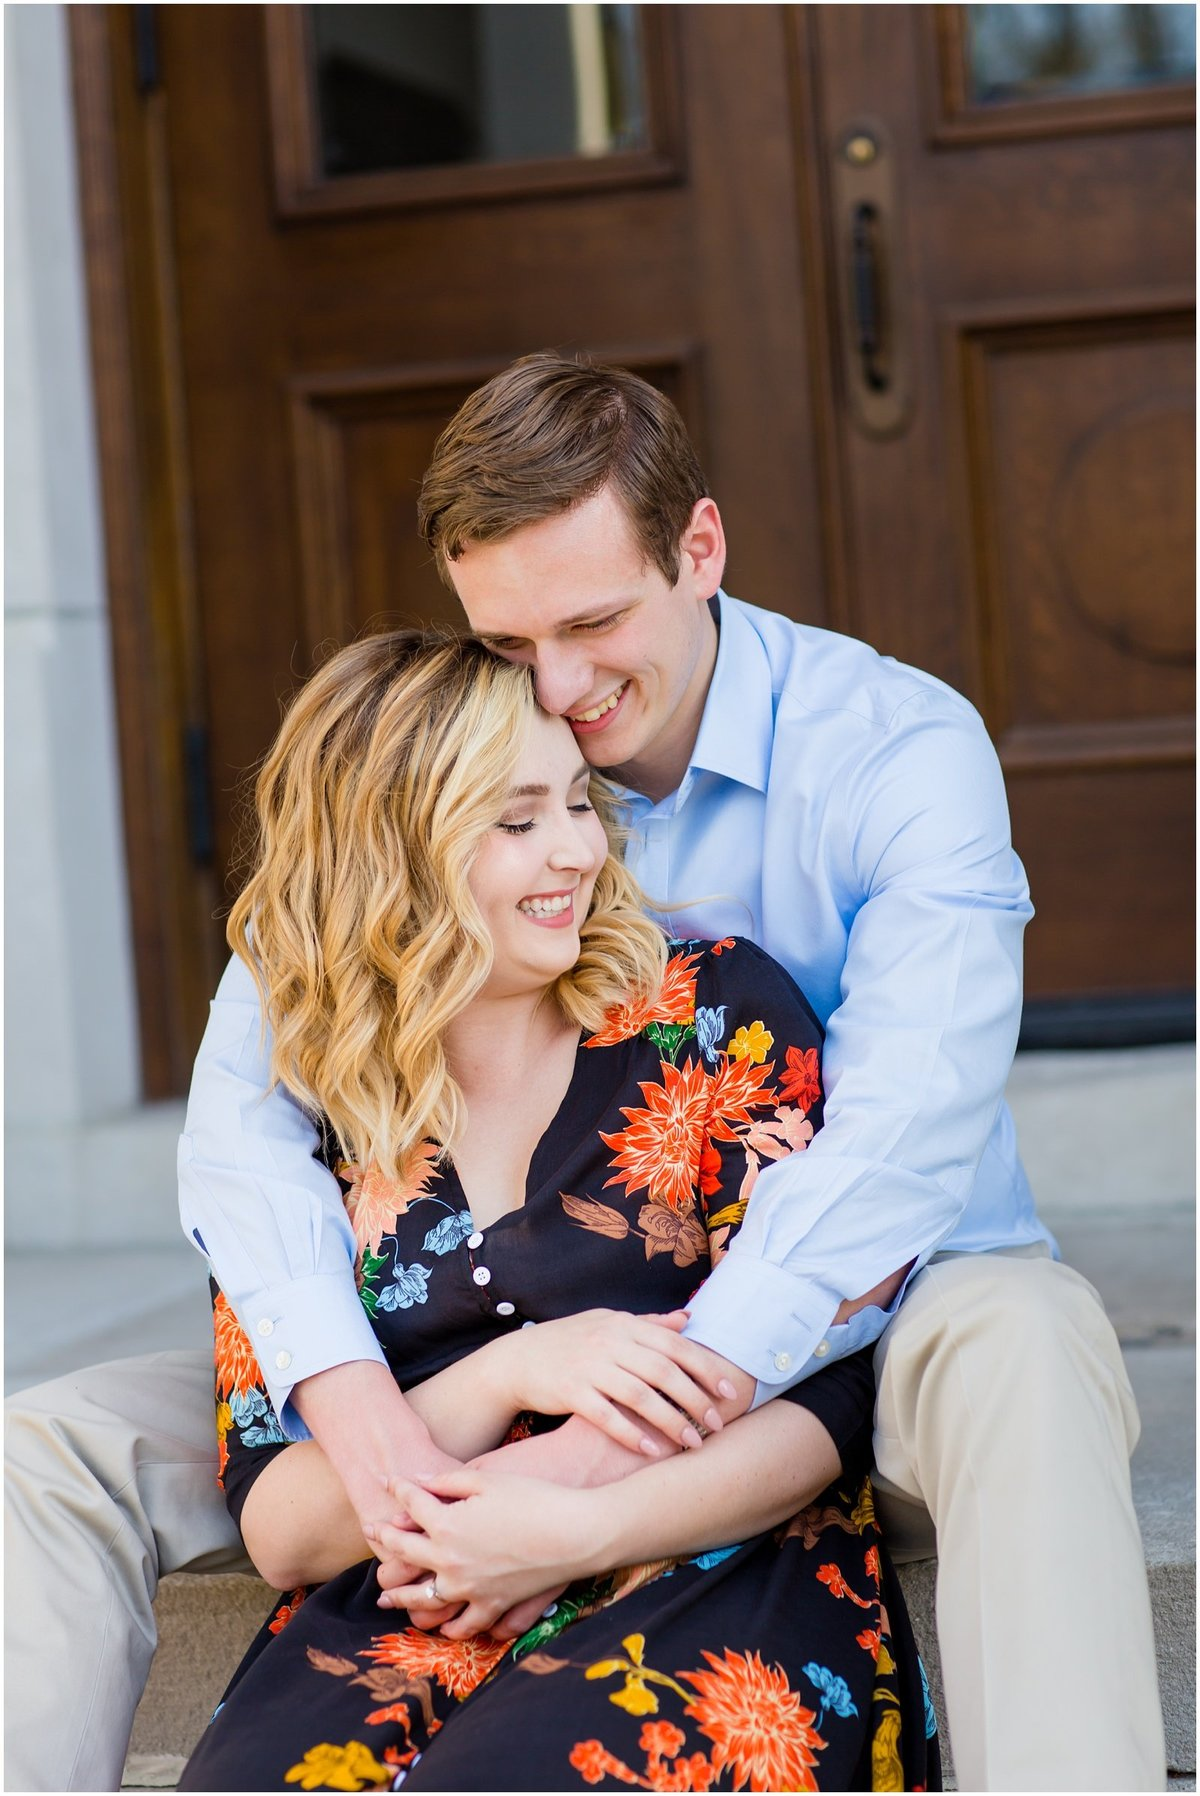 Illinois Portrait Photographer | Macomb, IL | Creative Touch Photography_0382